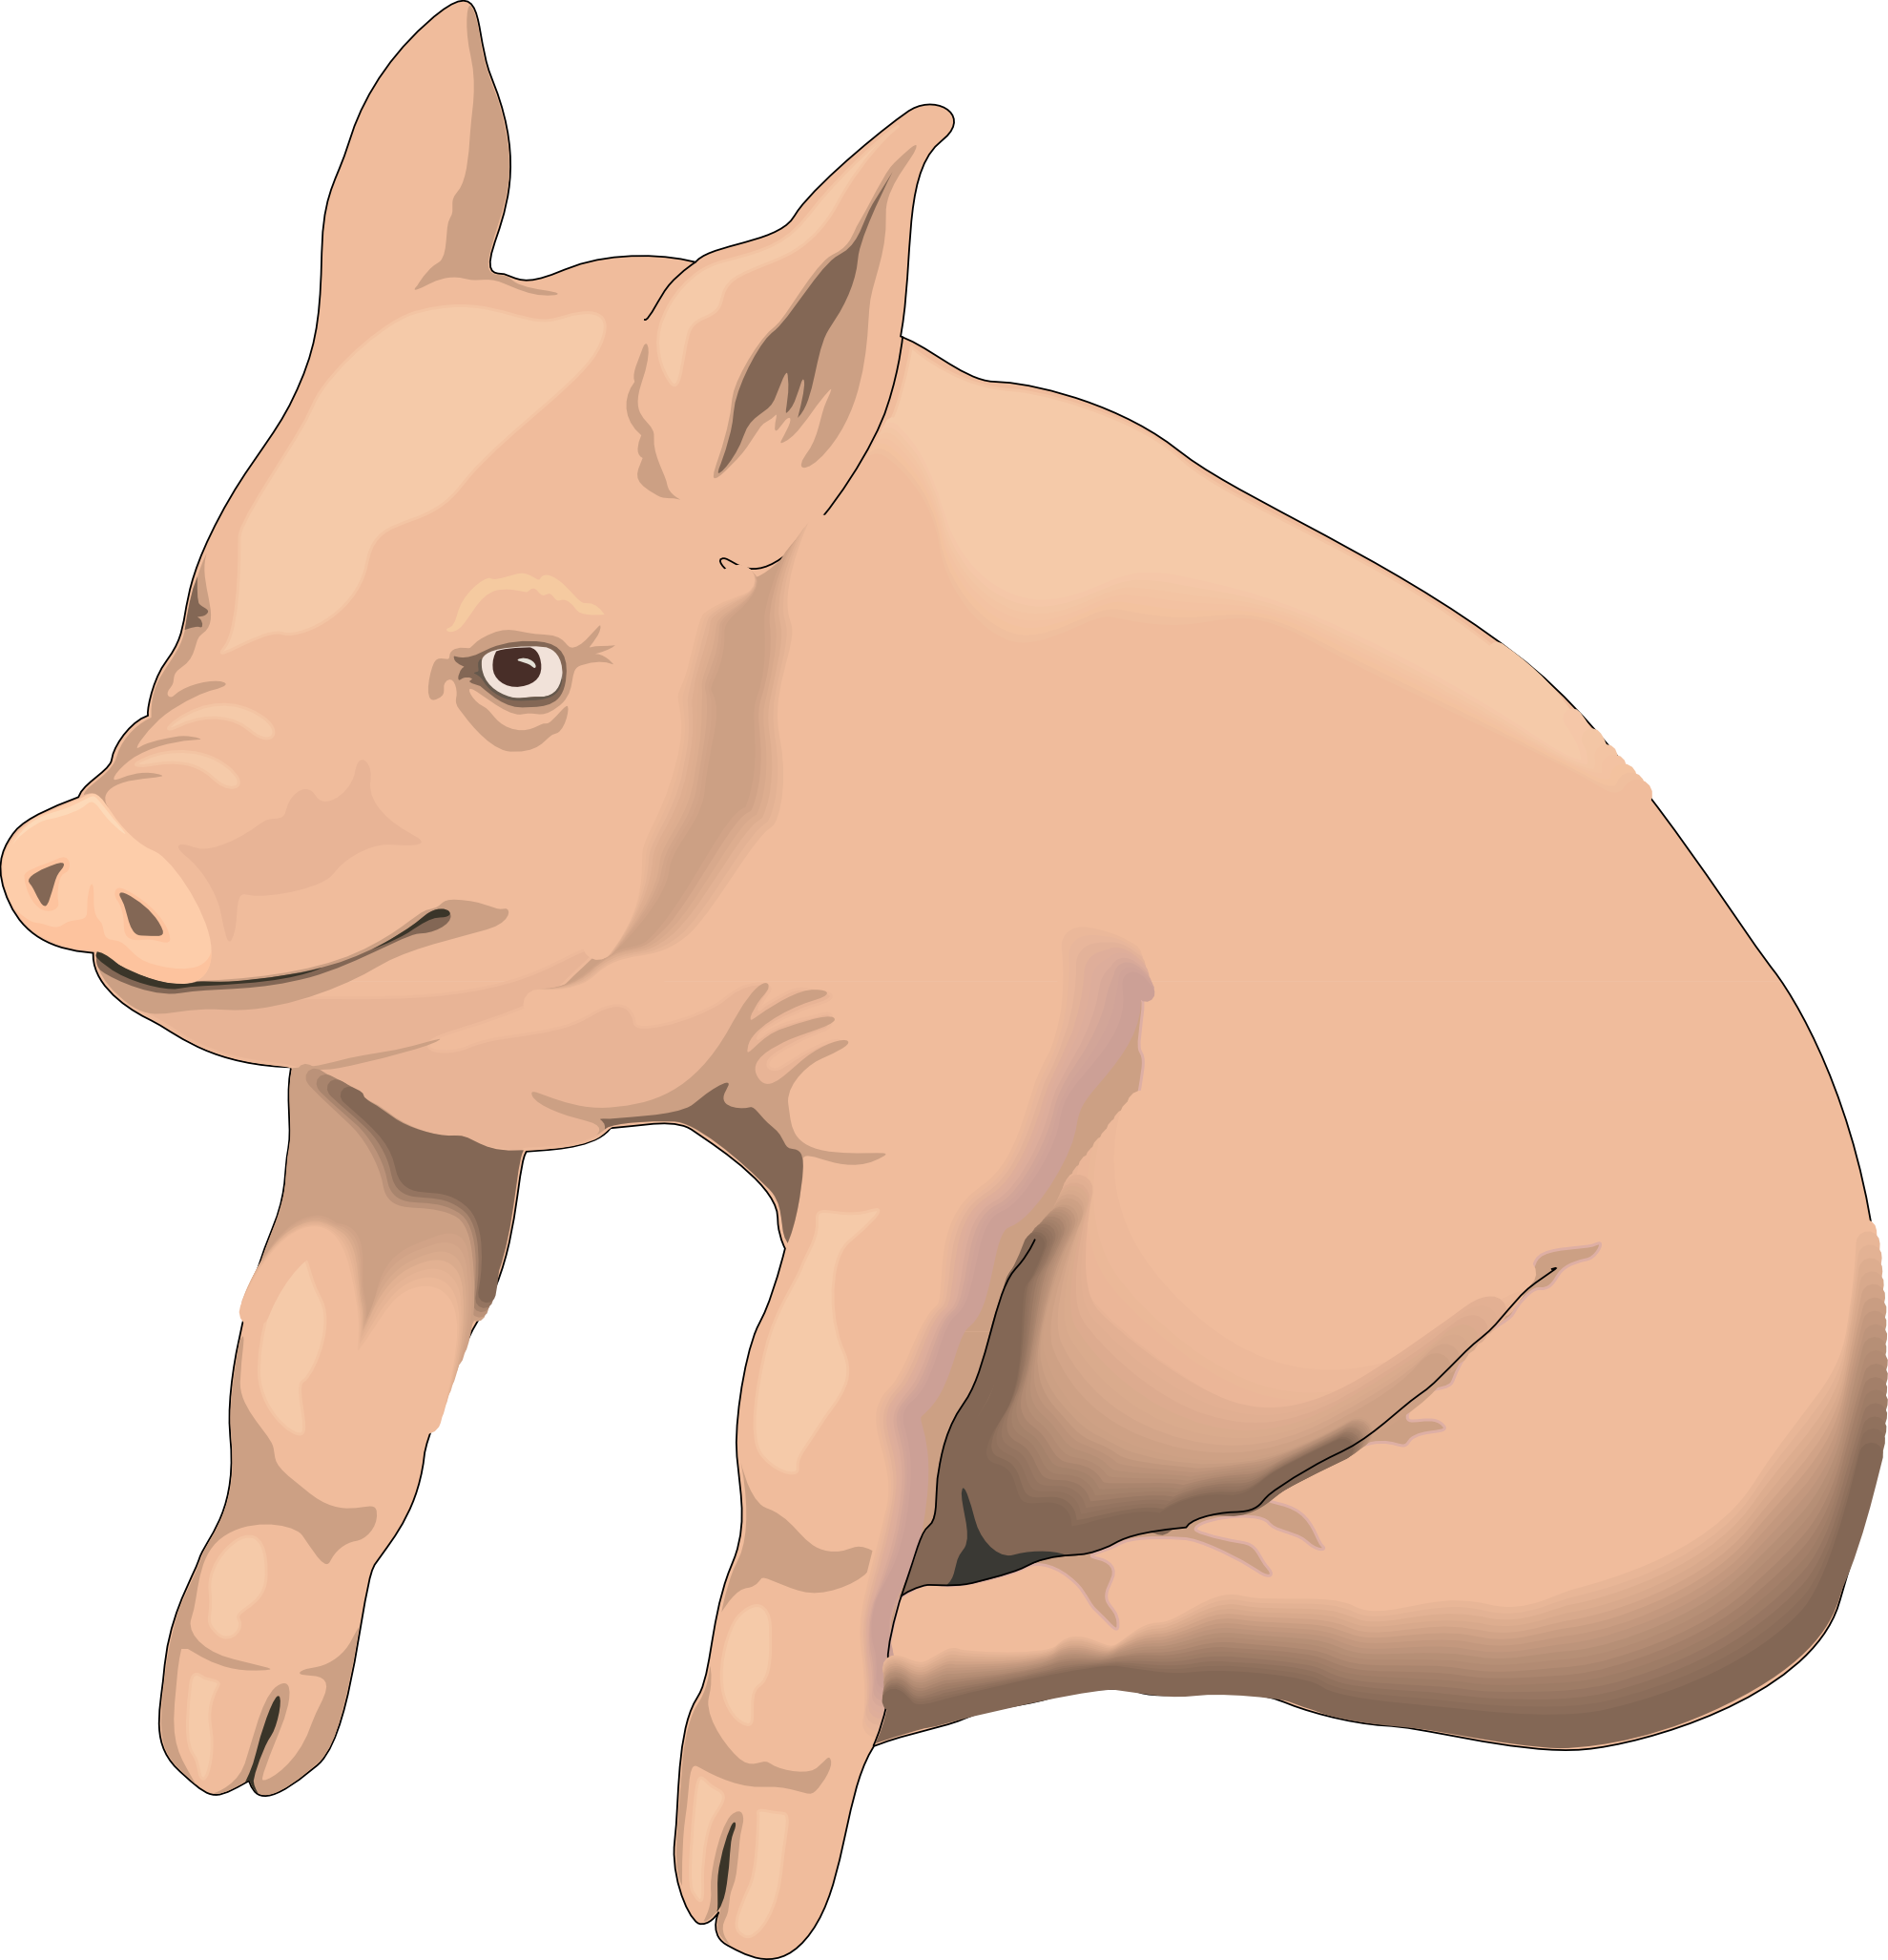 Isolated stock photo by. Monkey clipart pig